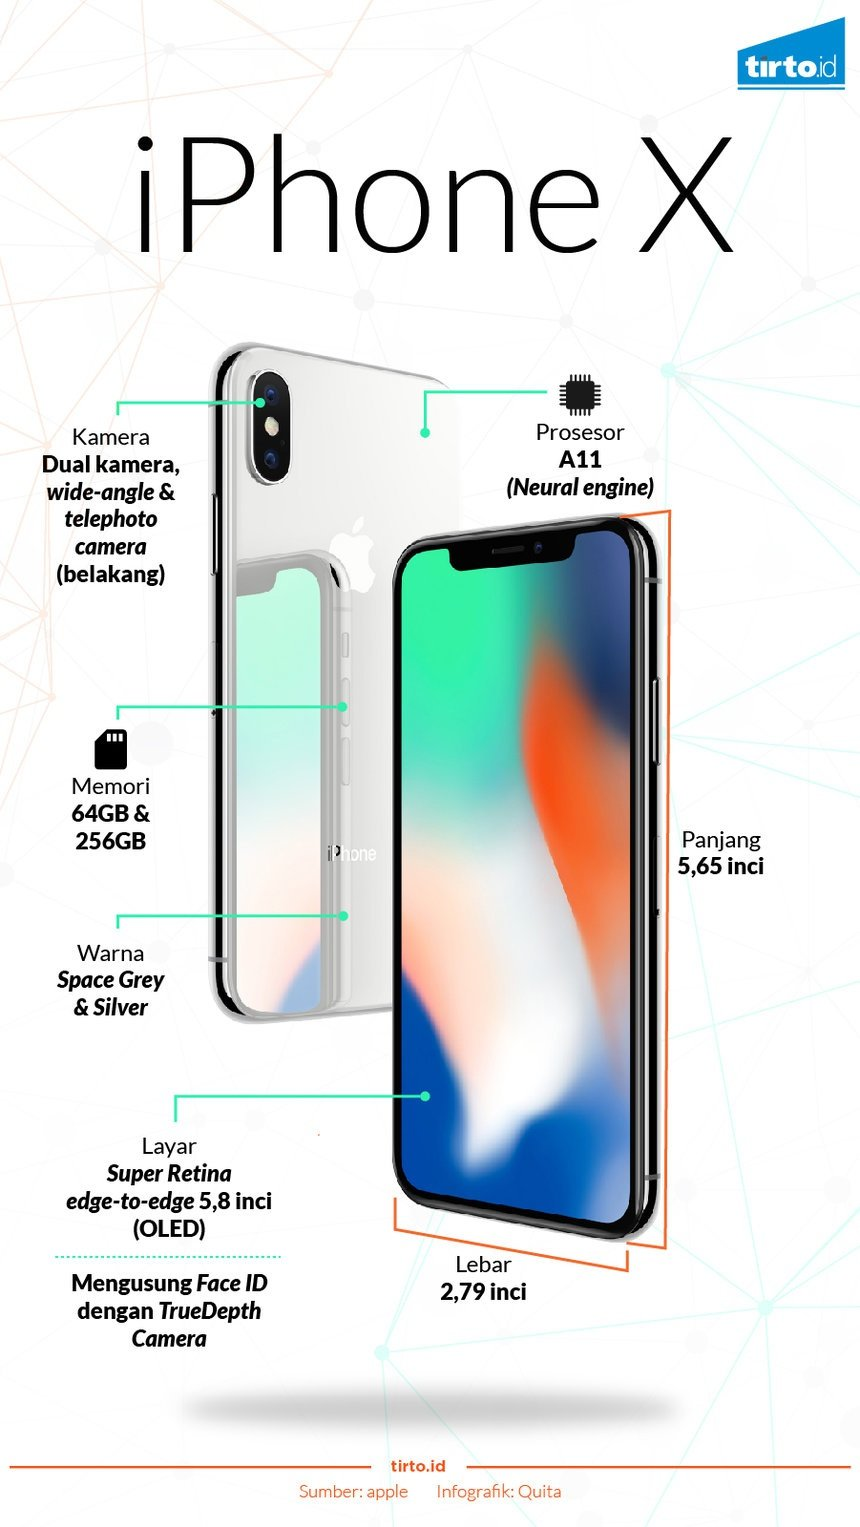 iPhone X, Saat Apple Mengekor Kompetitor